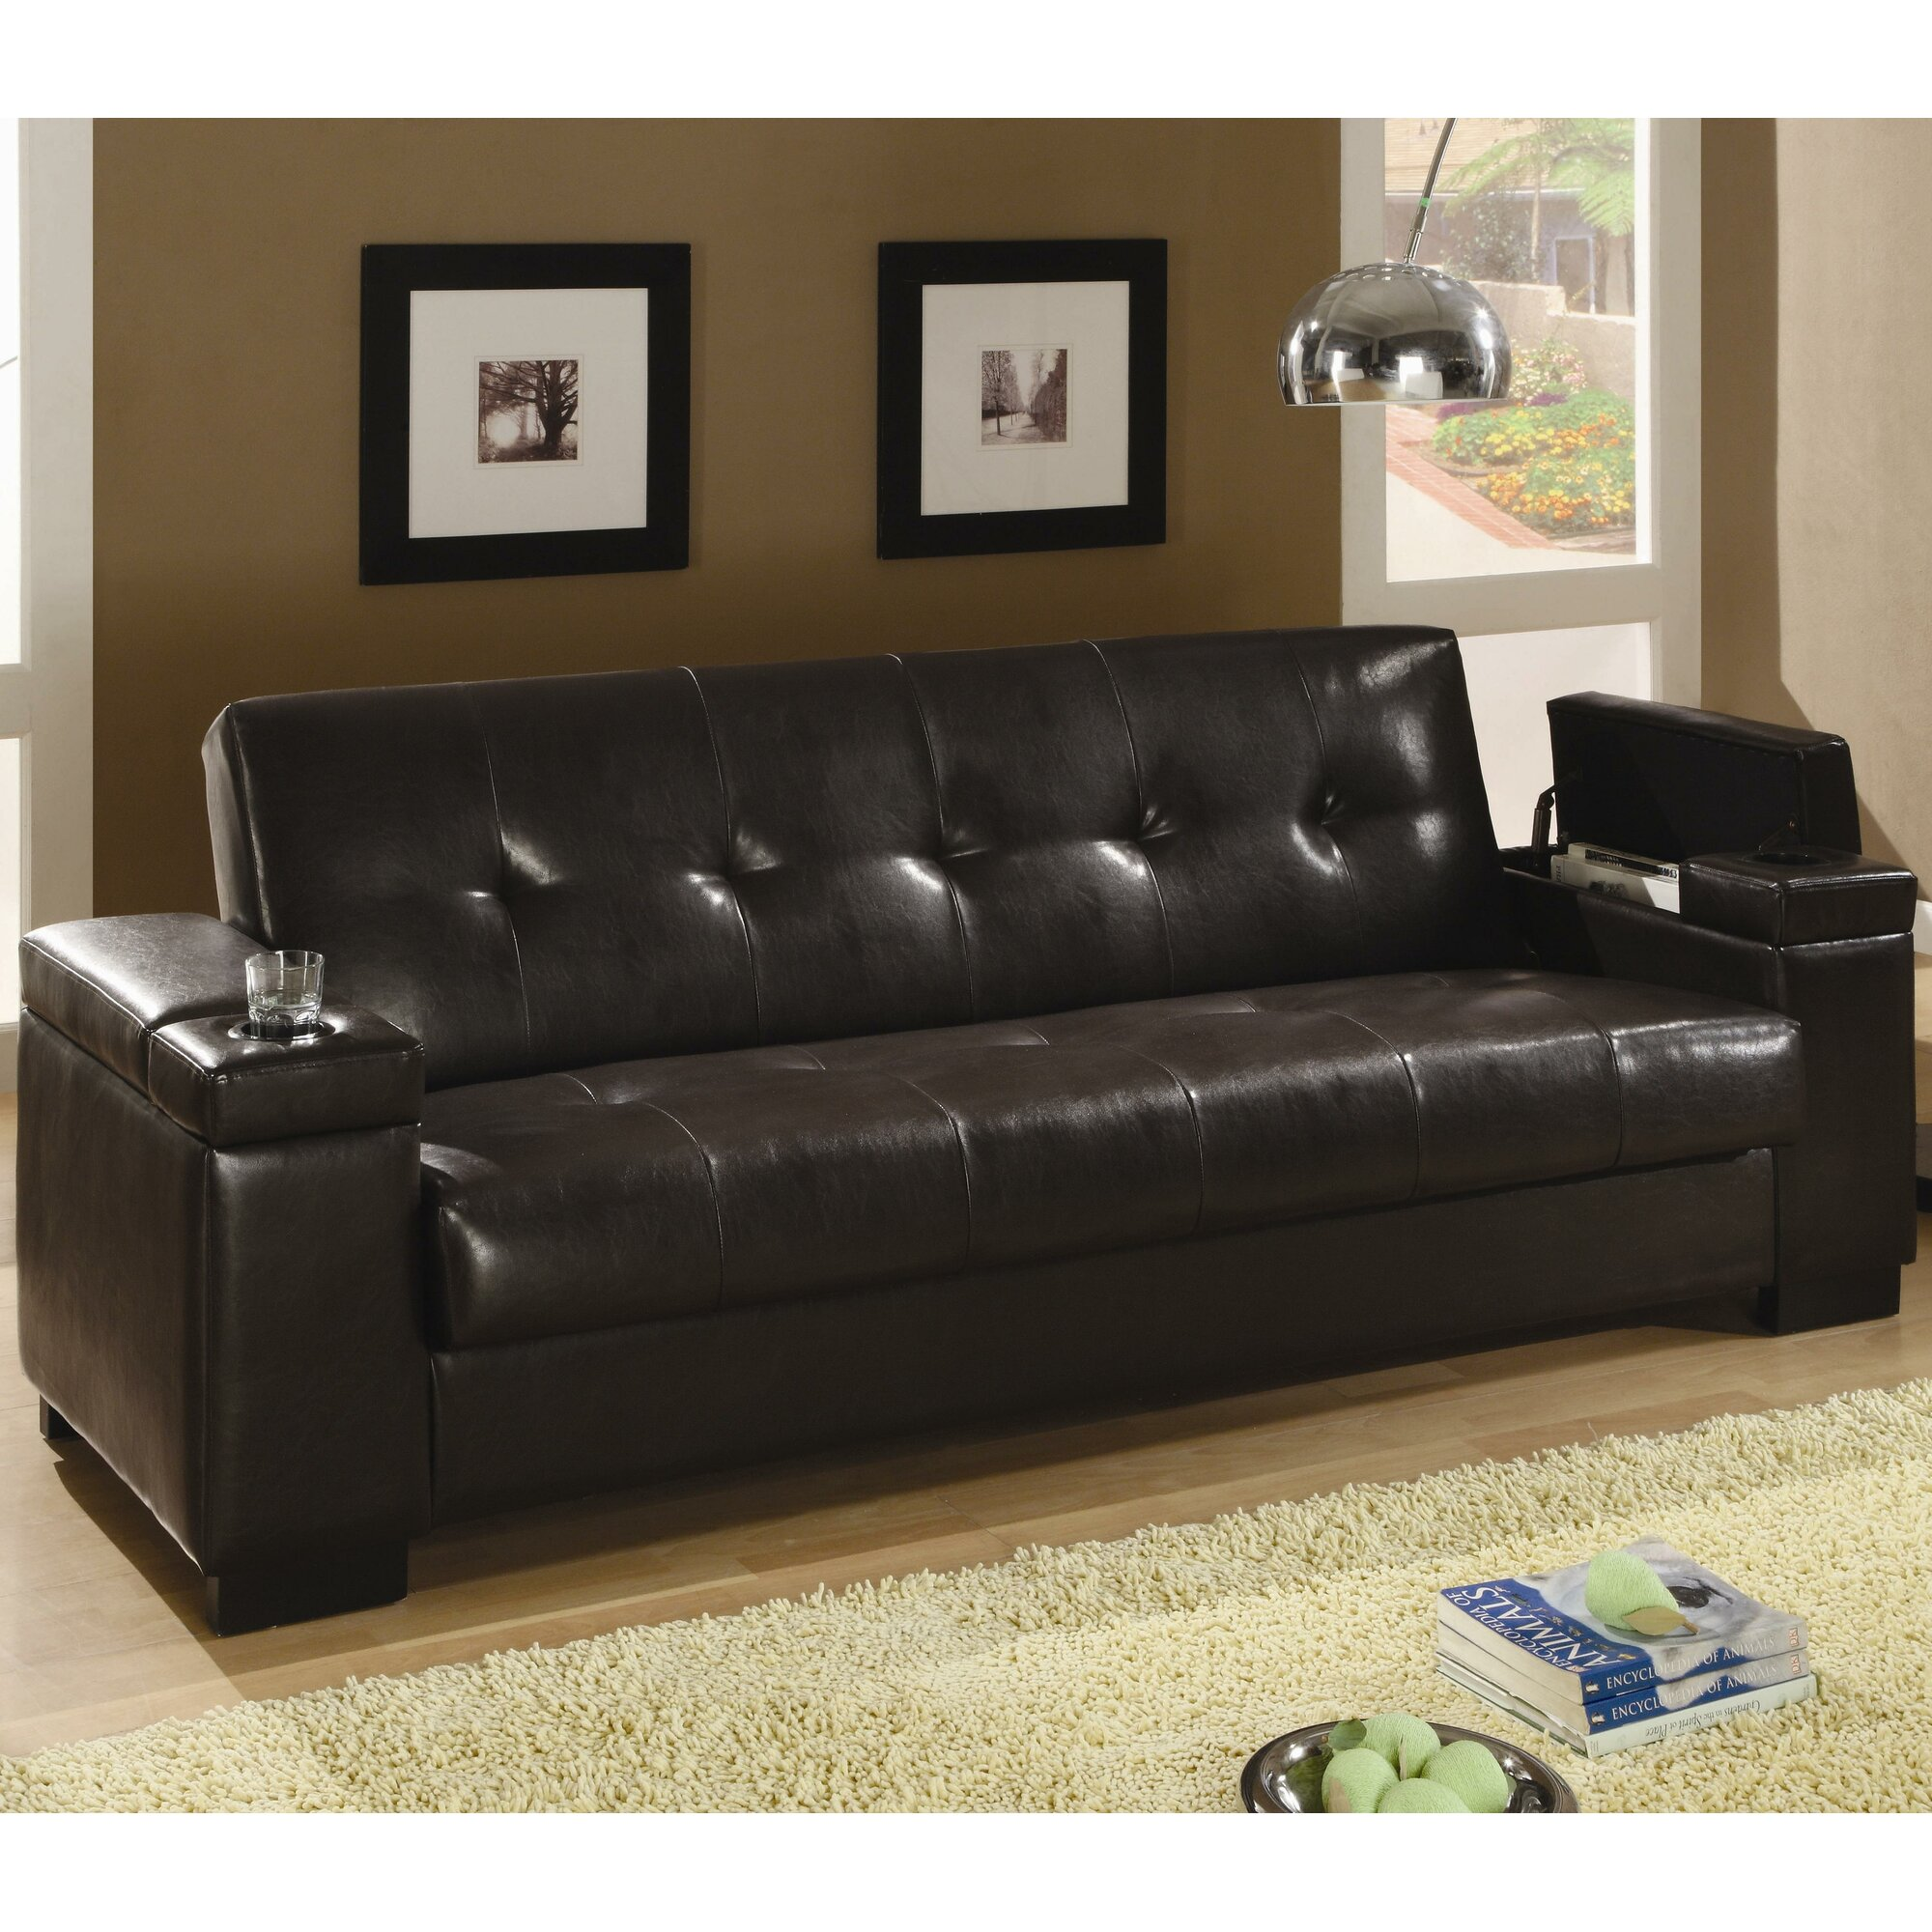 Wildon Home 174 San Diego Sleeper Sofa Amp Reviews Wayfair